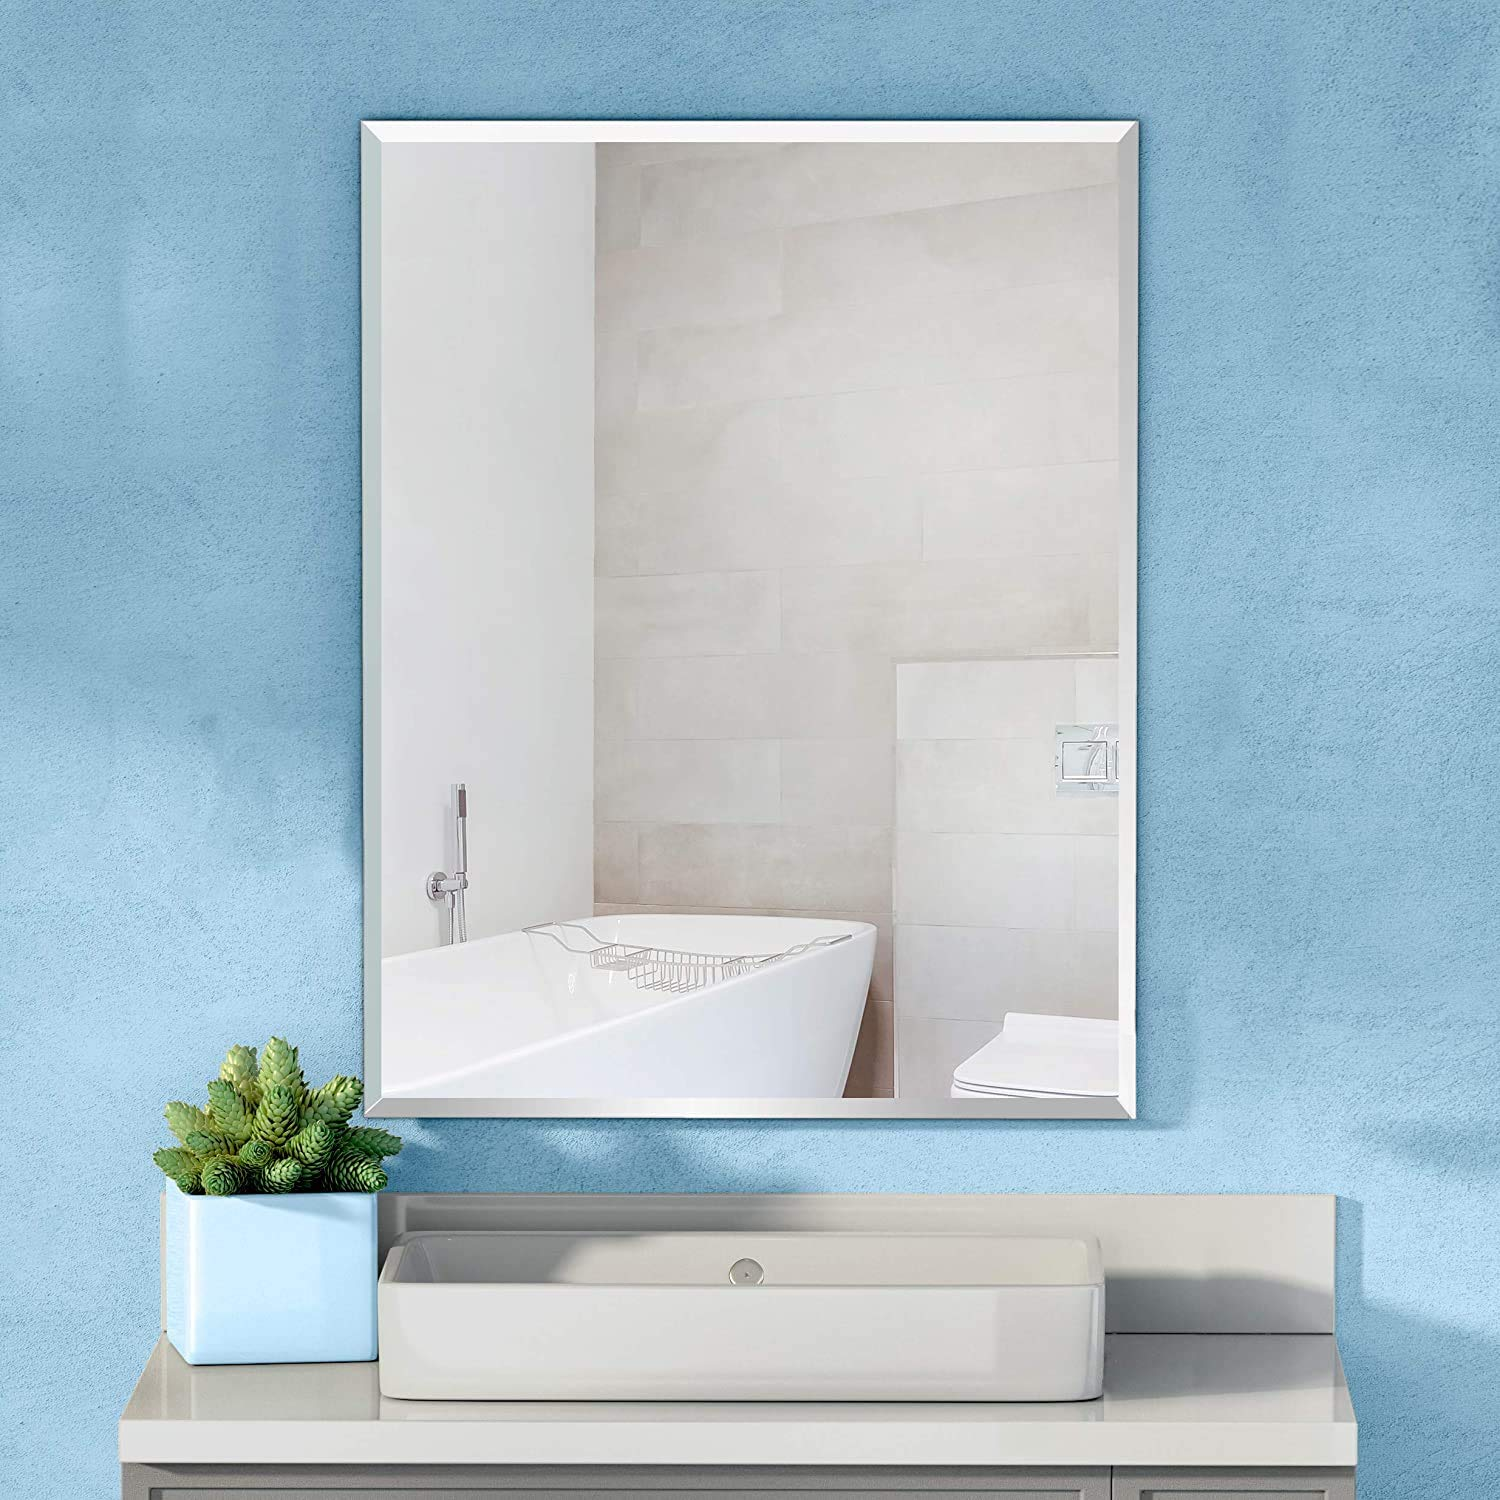 Buy Creative Arts N Frames Wall Mirror For Bathroom Bedroom Drawing Room And Wash Basin 15 X 21 Inch Online At Low Prices In India Amazon In